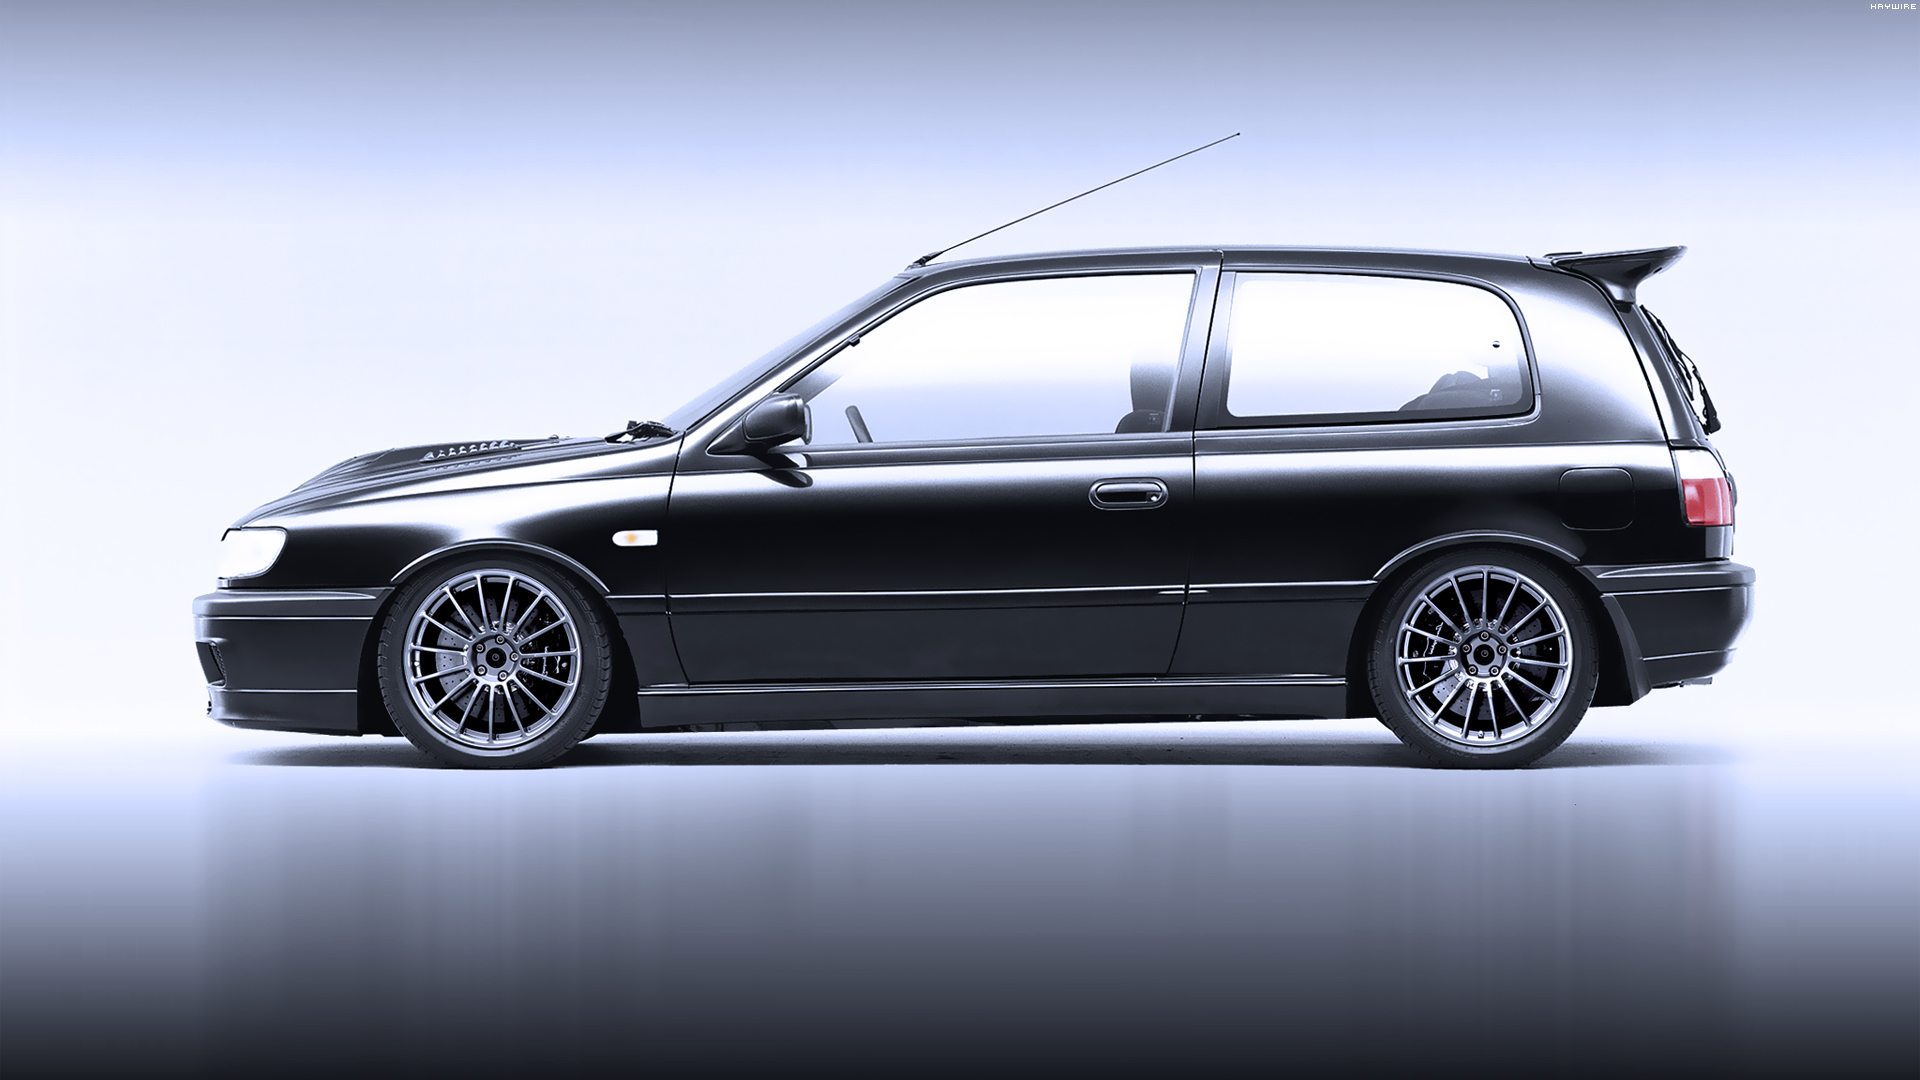 Here S A Nice Pulsar Gti R Wallpaper If You Re Interested